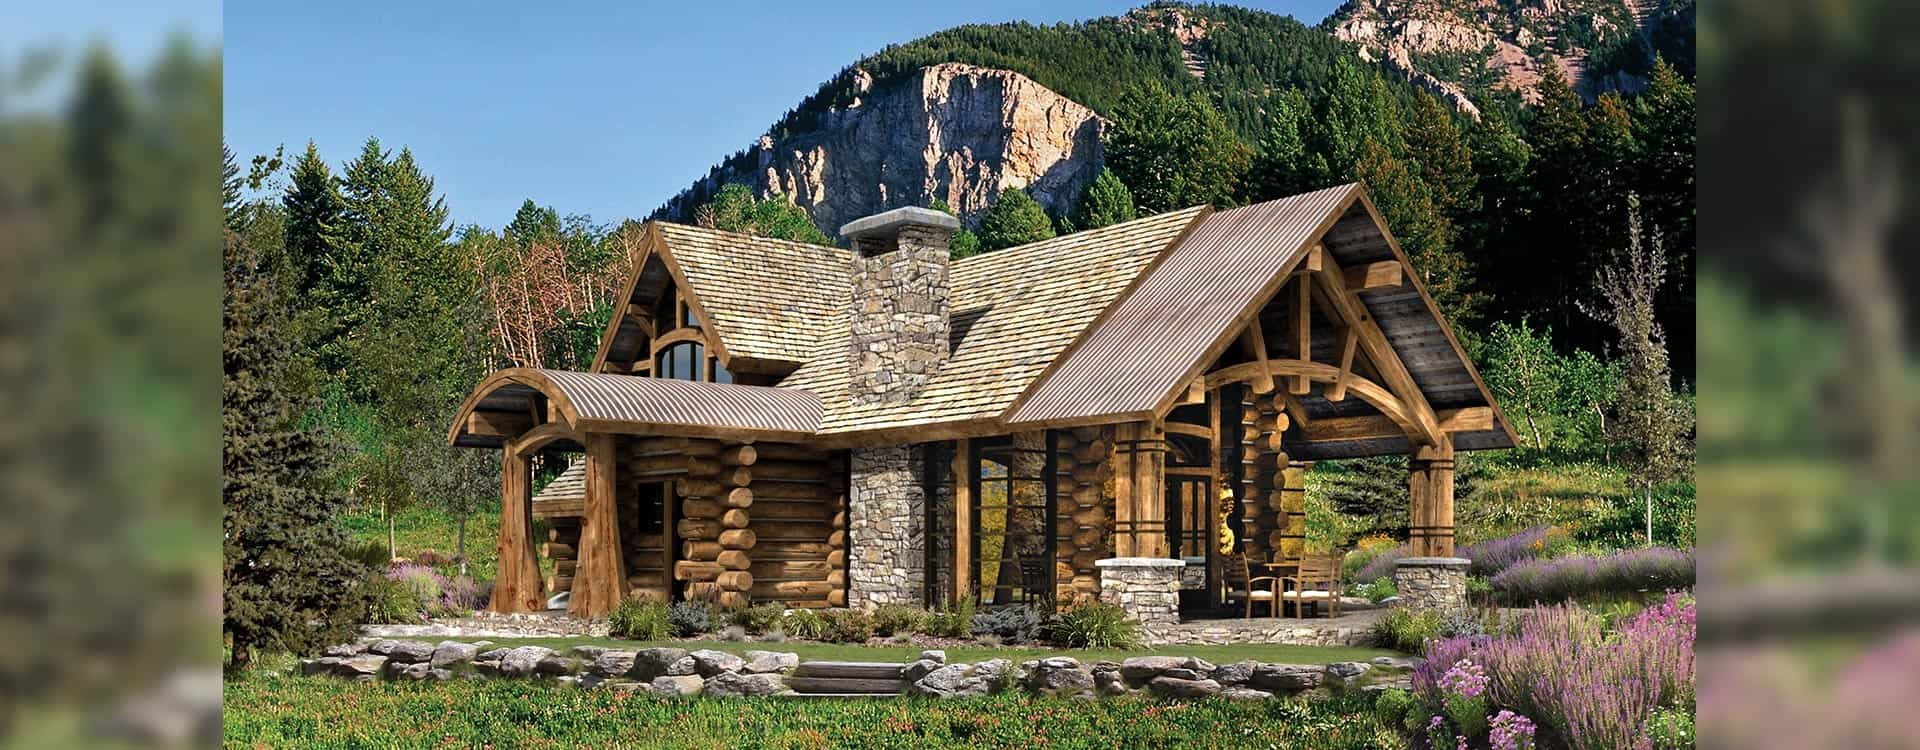 Upland Retreat Luxury Log Home Planber Frame House Plans